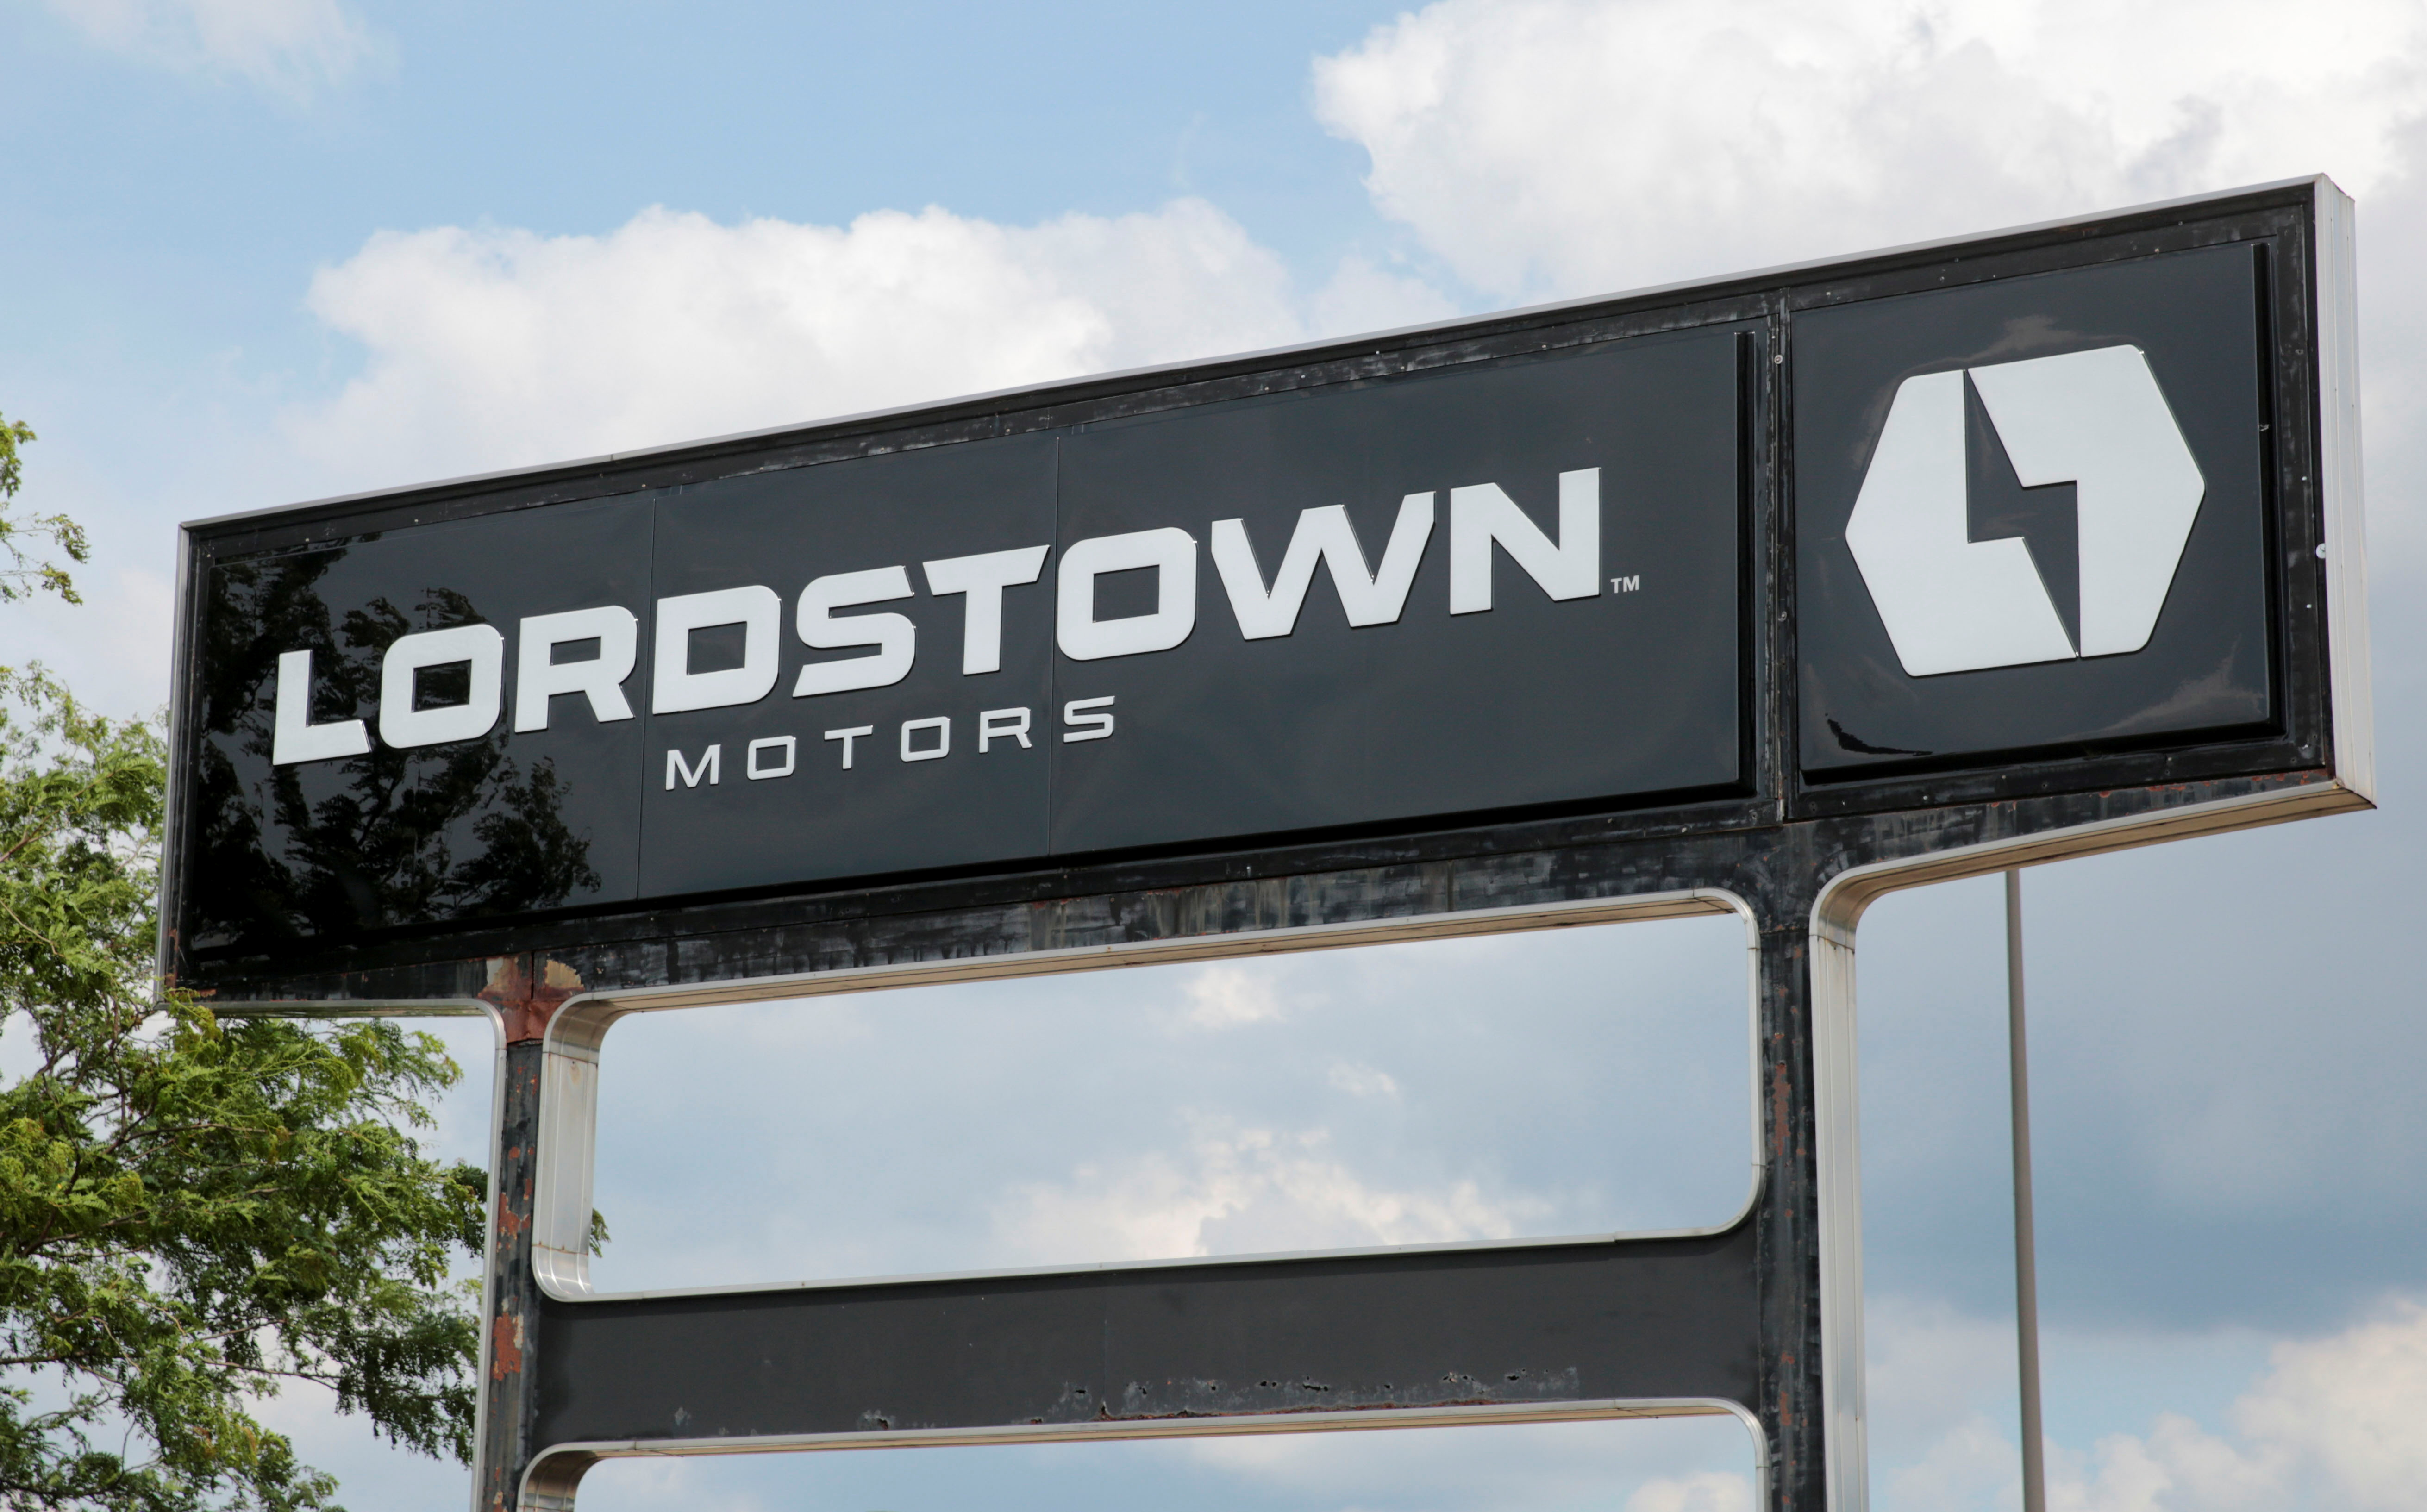 A Lordstown Motors sign is seen outside the Lordstown Assembly Plant in Lordstown, Ohio, U.S., June 21, 2021. REUTERS/Rebecca Cook